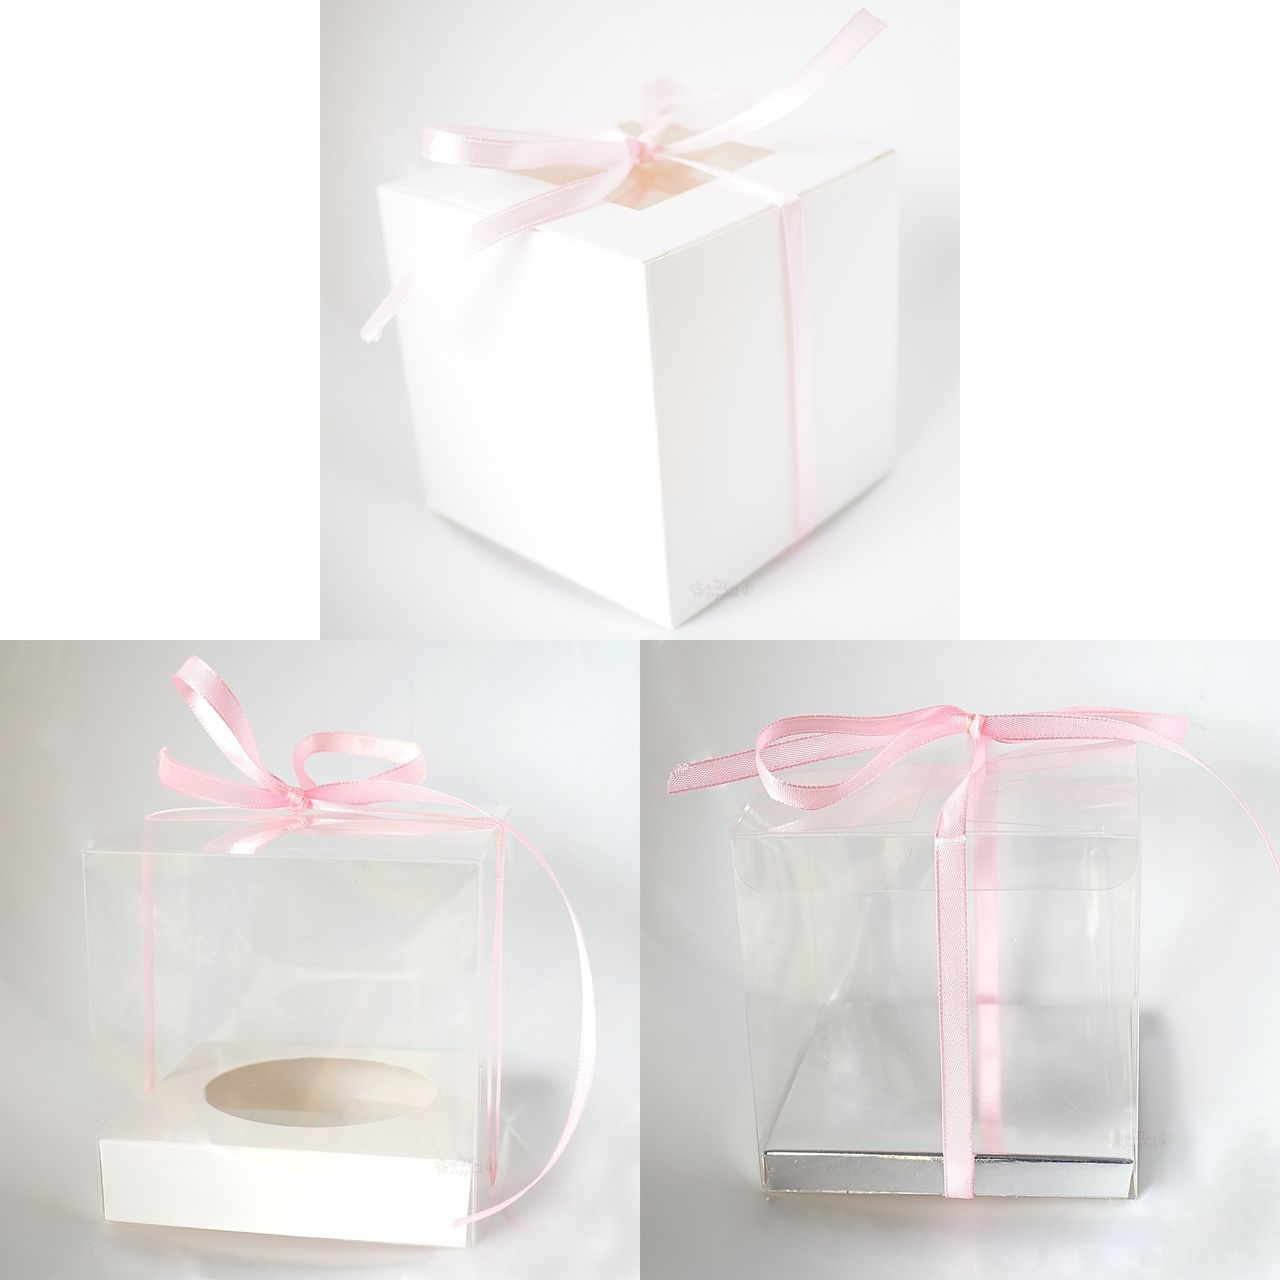 Gems Wedding Supplies - 50 x Cupcake Boxes, Clear or White, $55.00 ...